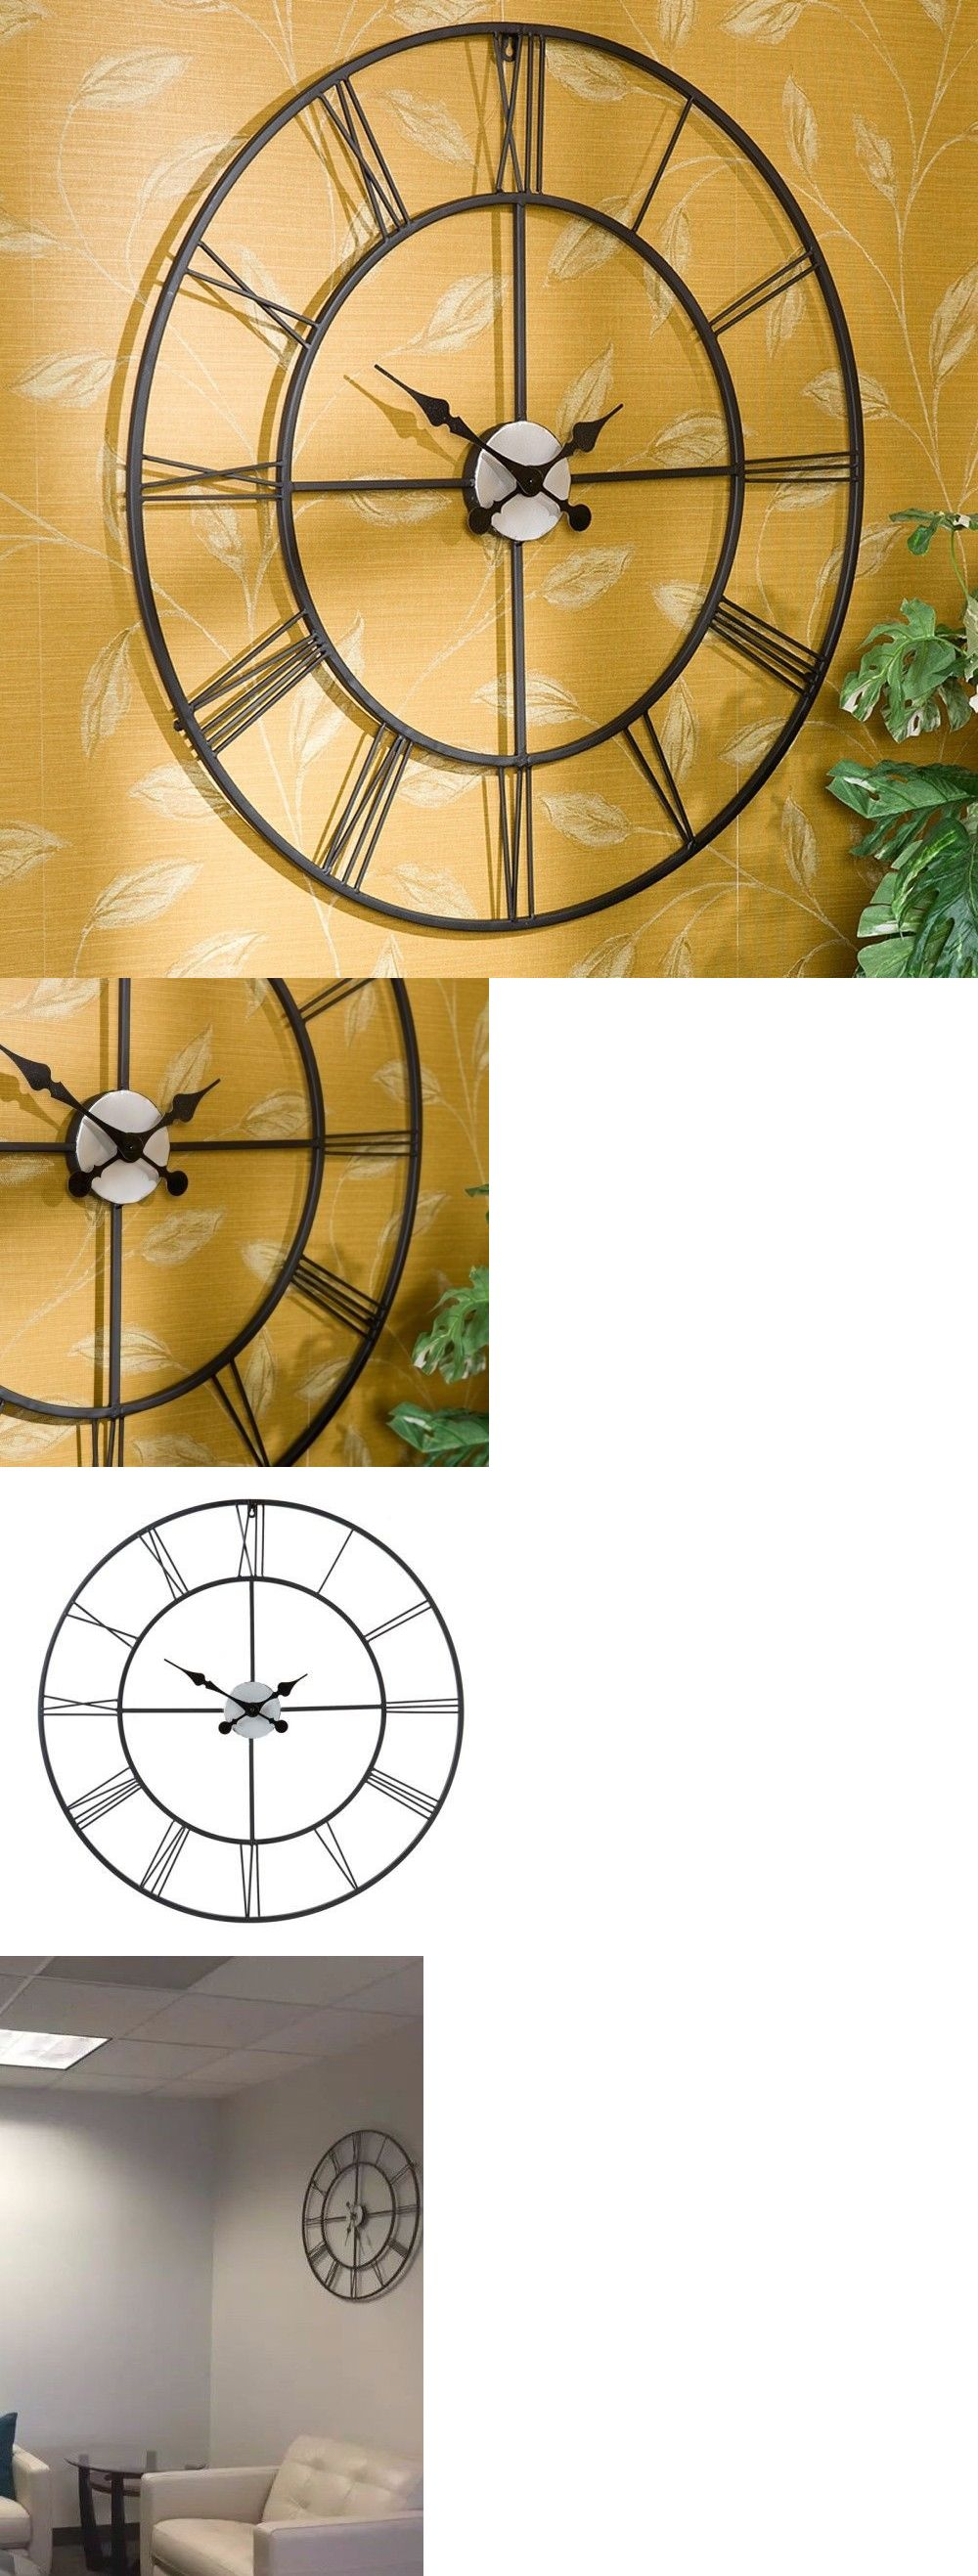 Wall Clocks 20561: Oversized Wall Clock Large Decorative For ...